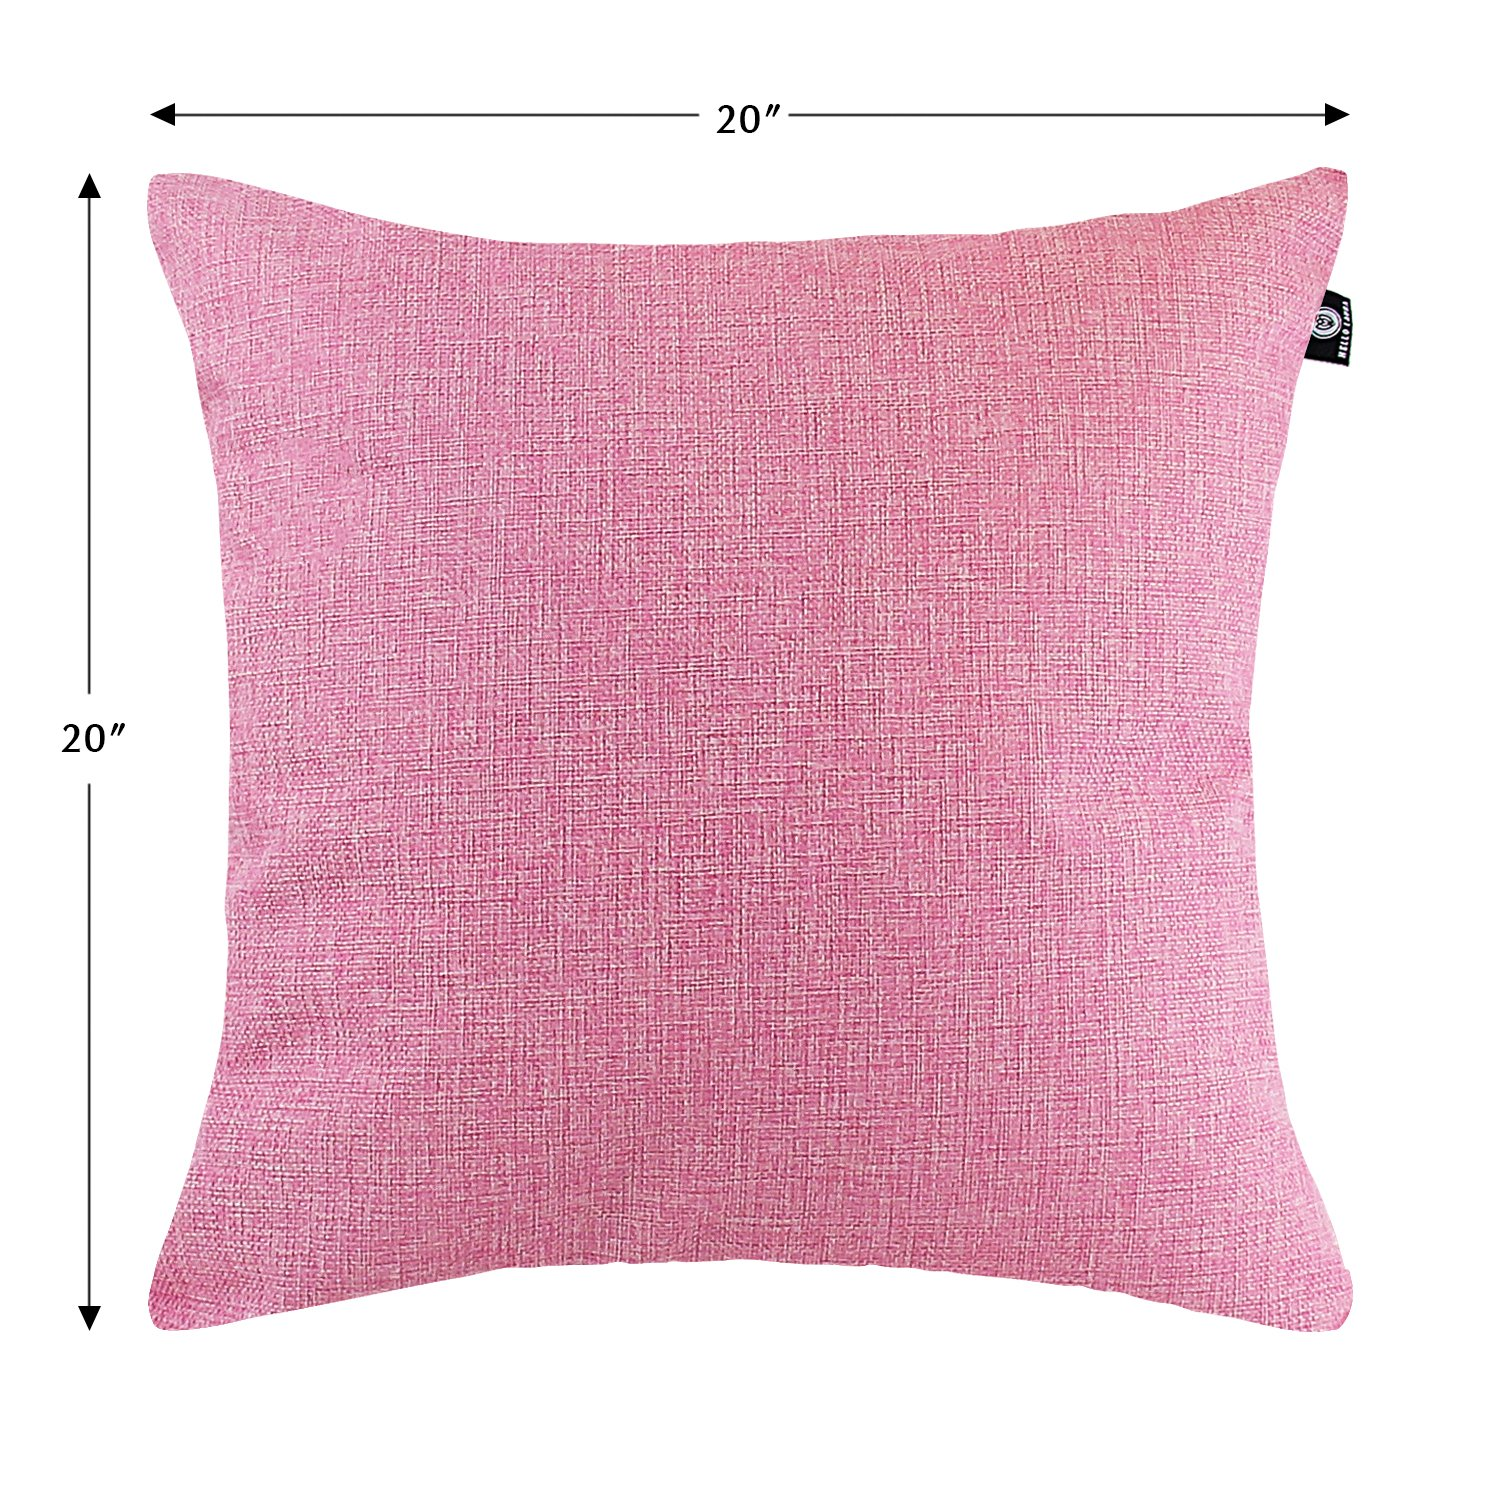 Hello Laura 4 Pieces Cushion Cover Home Decor Couch Throw Pillow Cushion Case Shell Cover Light Pink Hidden Zipper Durable Linen Cotton Blend 20 L x 20 H